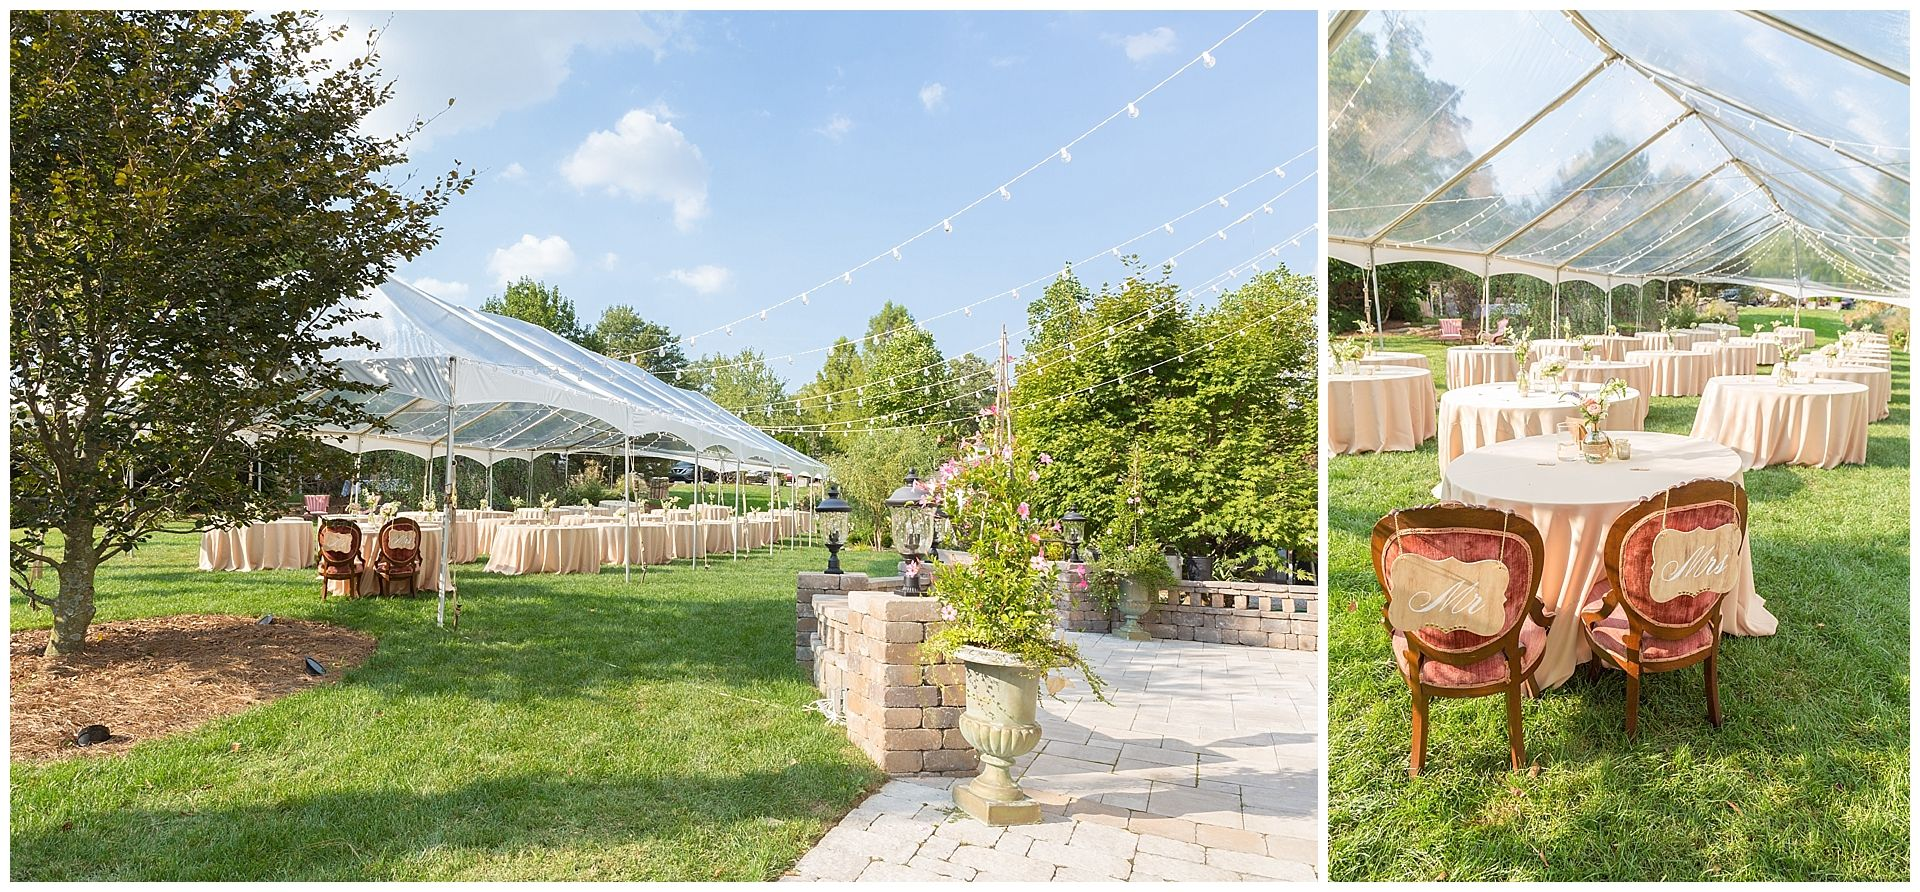 Kevin And Anna Photography The Barn At Springhouse Gardens Wedding Venue In Nicholasville Ky Kentucky Bride Southern